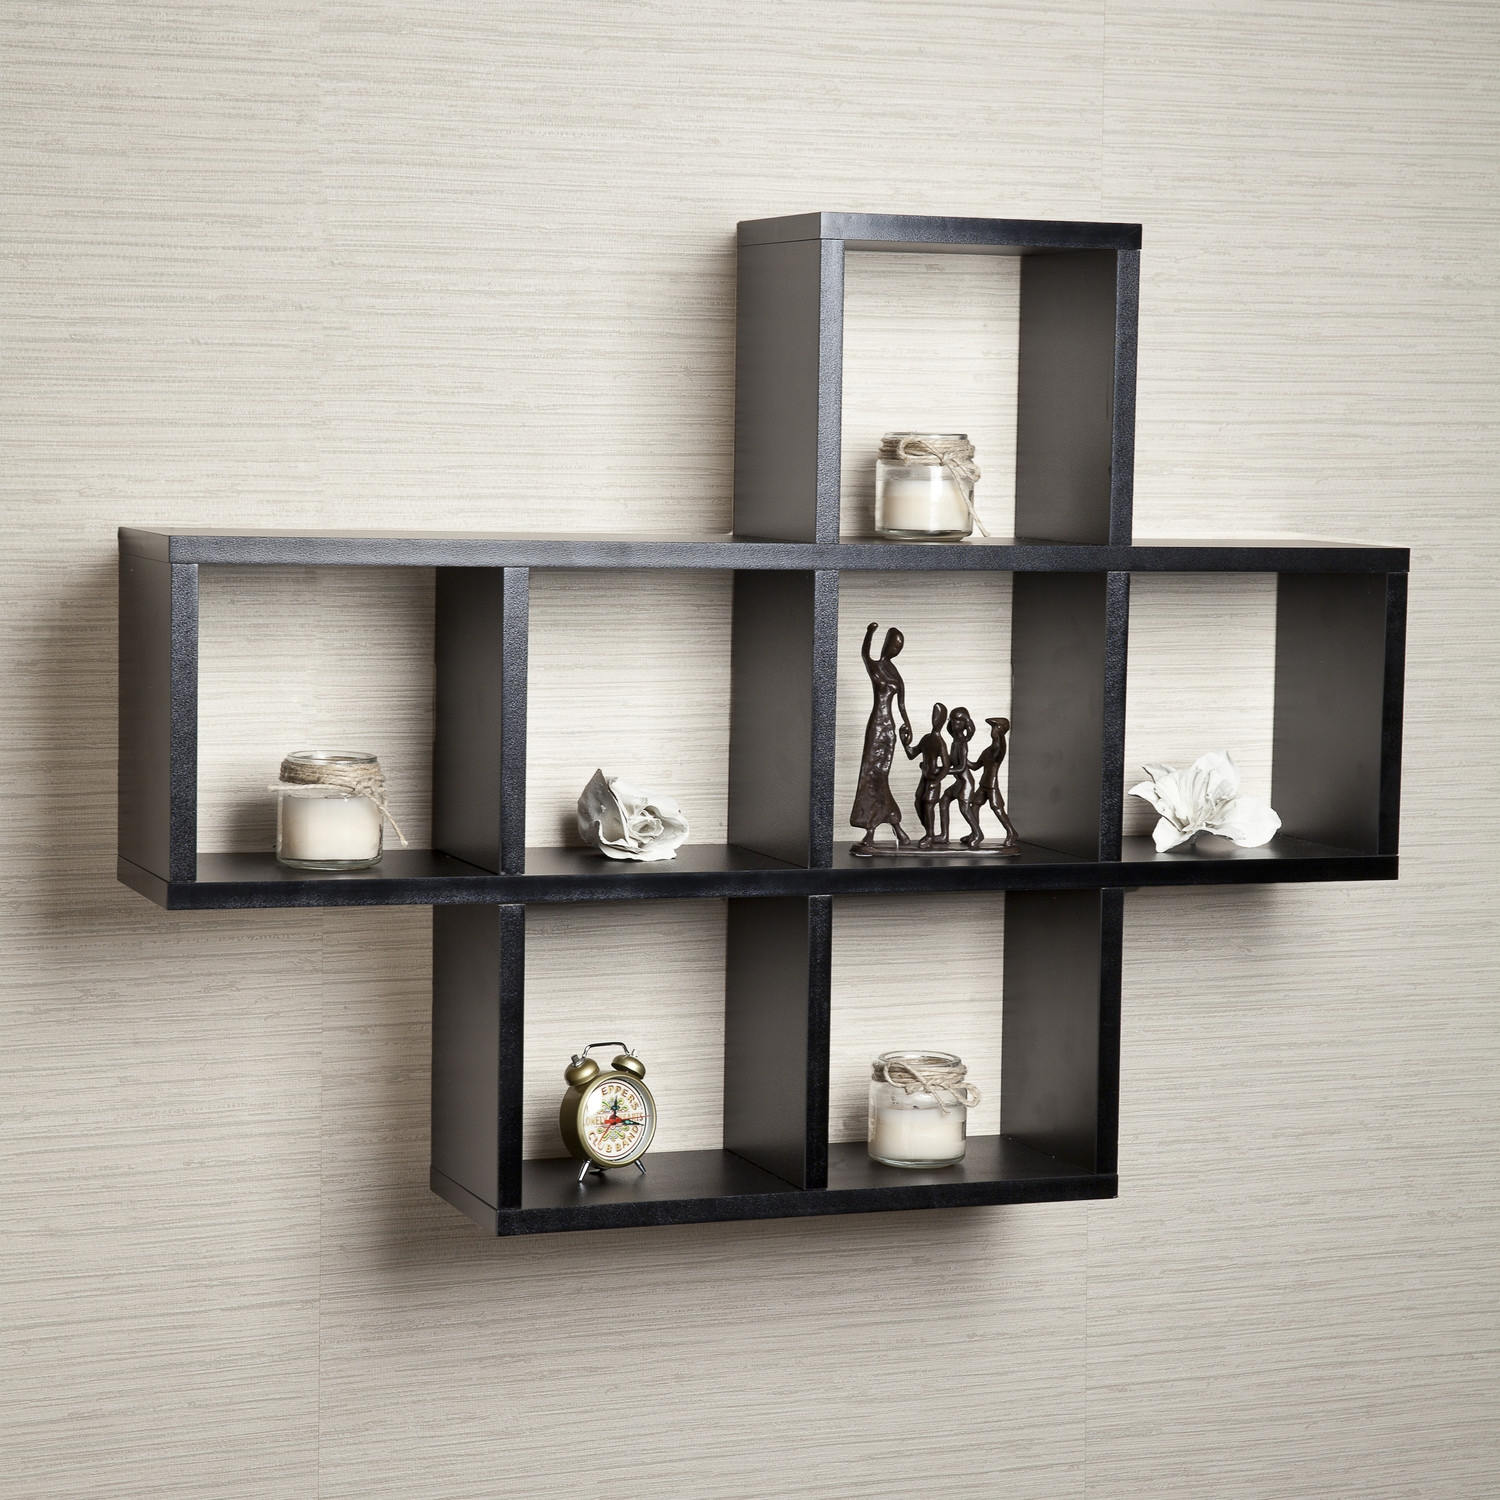 Wall Shelves Design Narrow Wall Shelves For Minimalist Home Decor Inside Wall Shelves (#9 of 12)